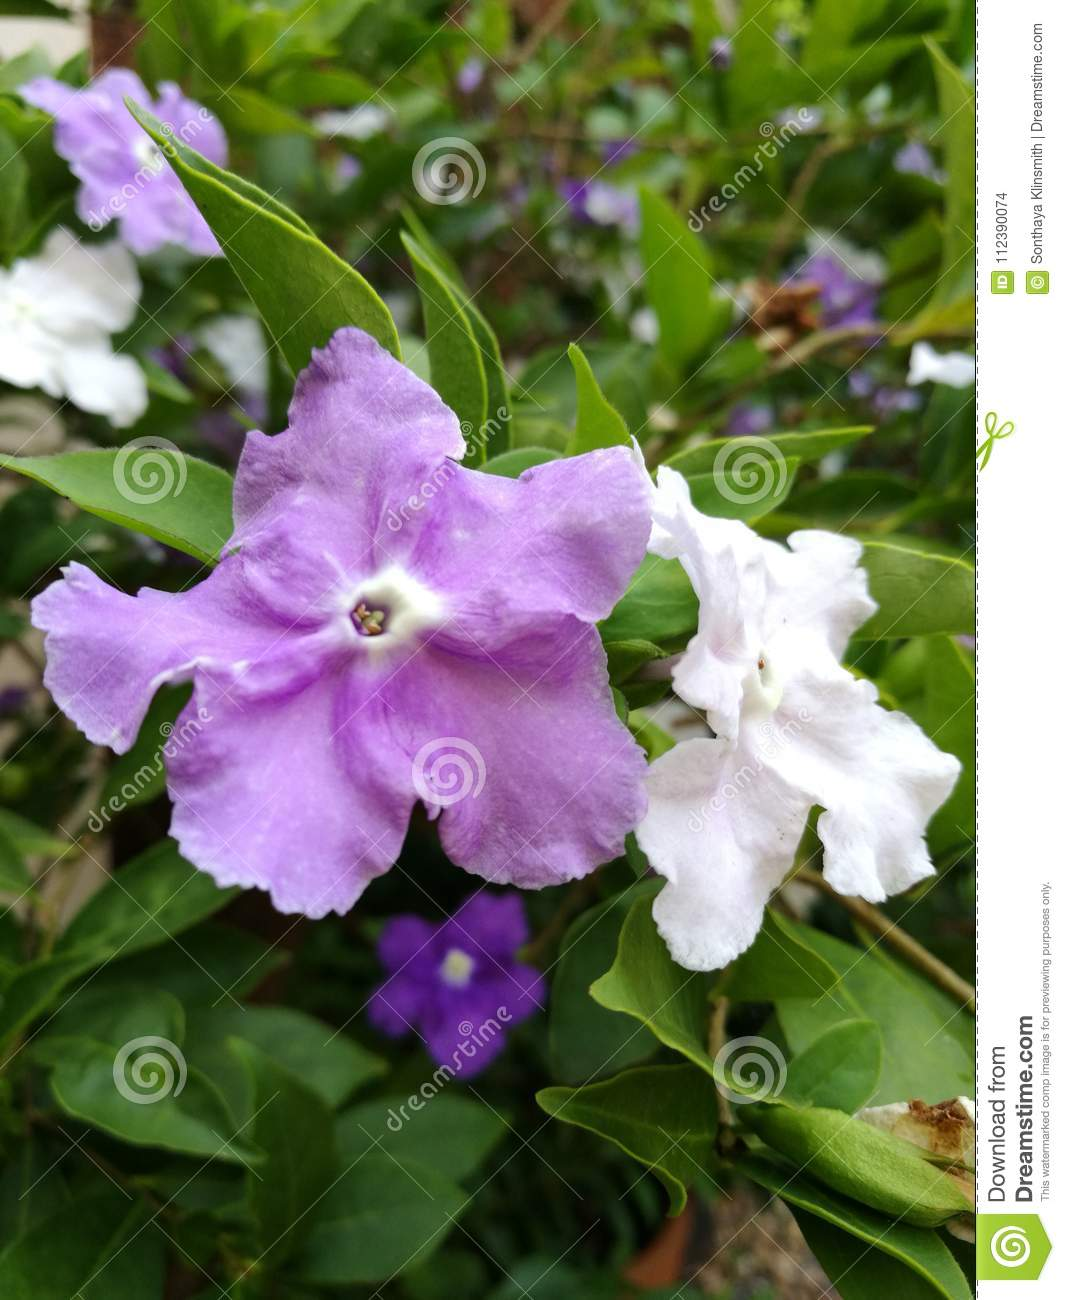 Purple and white flowers stock photo image of australis 112390074 closeup of purple and white flowers brunfelsia australis blooming with green leaves mightylinksfo